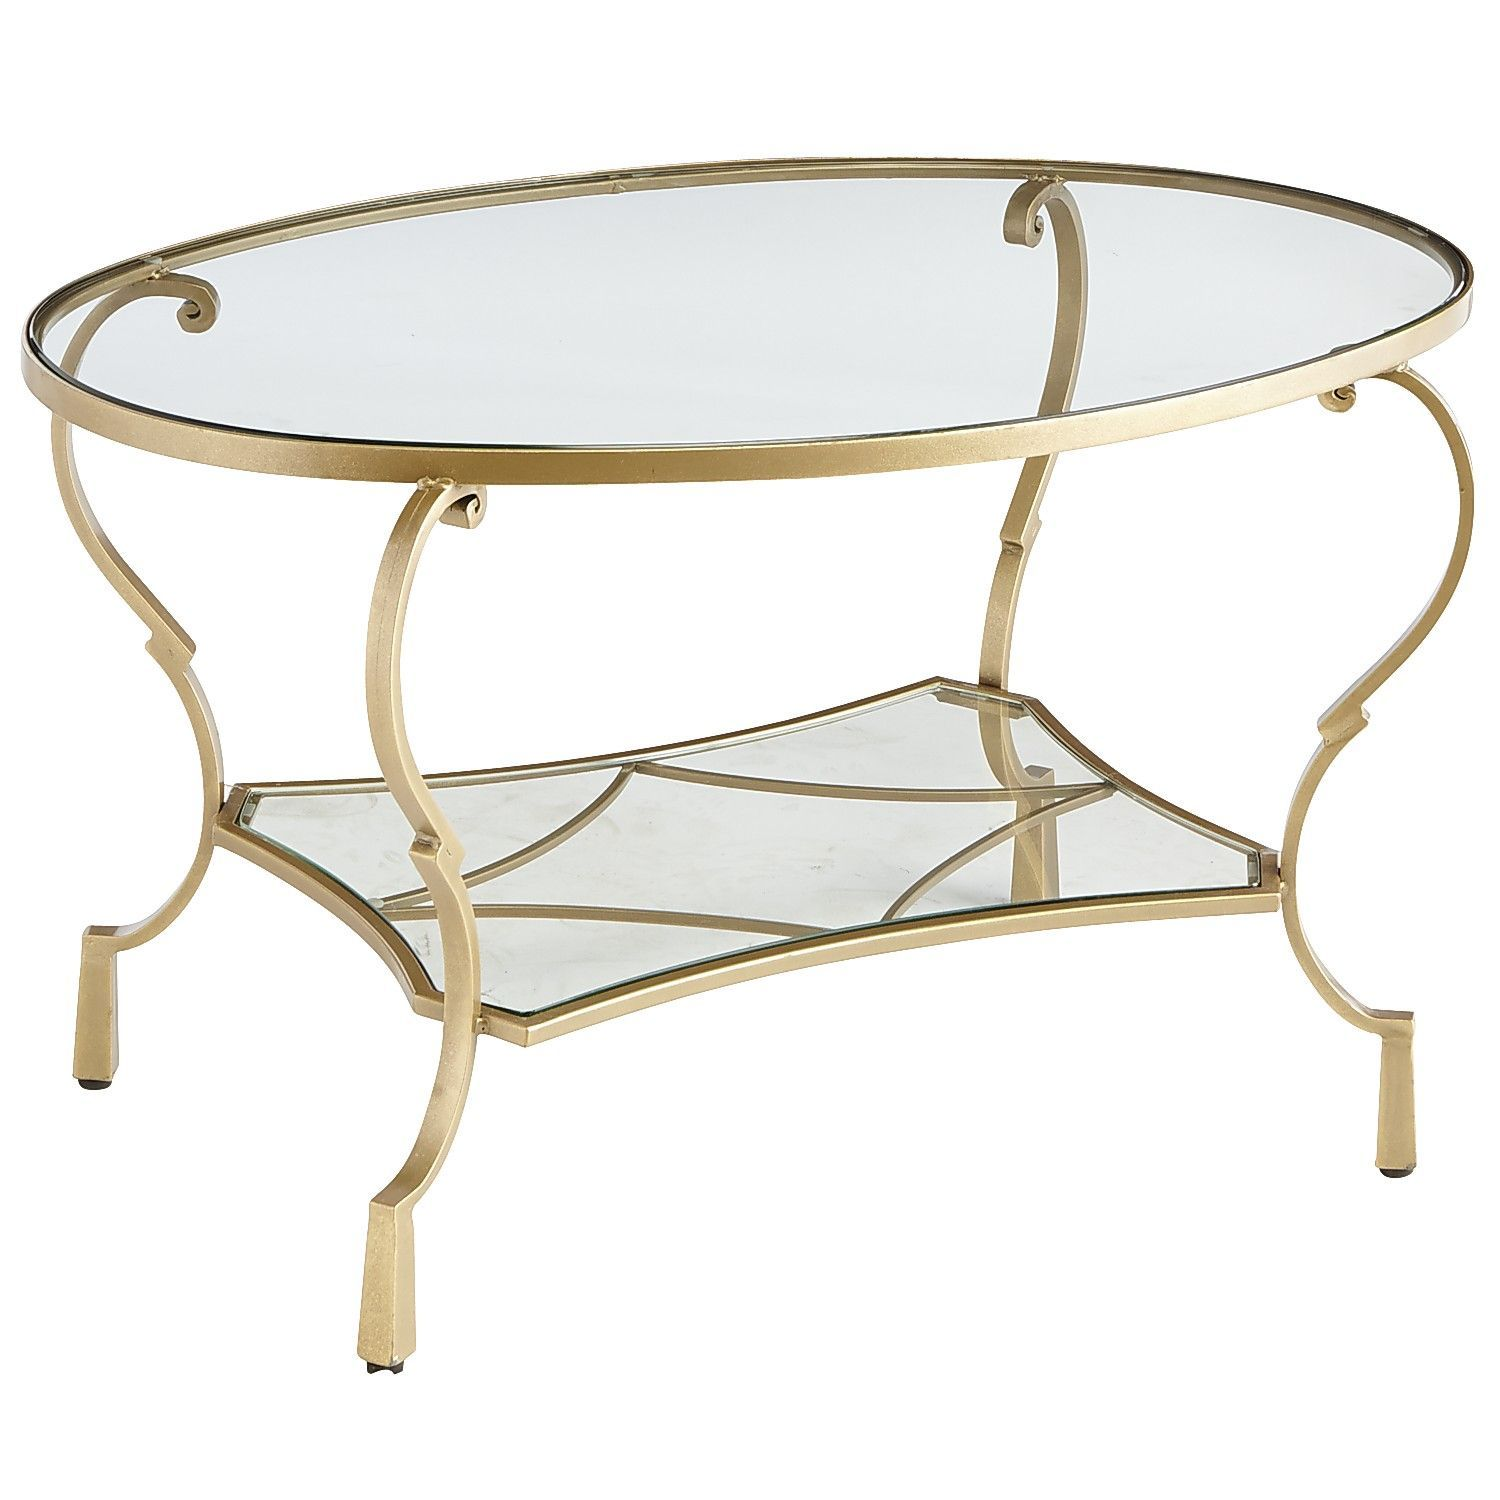 Chasca Glass Top Gold Oval Coffee Table